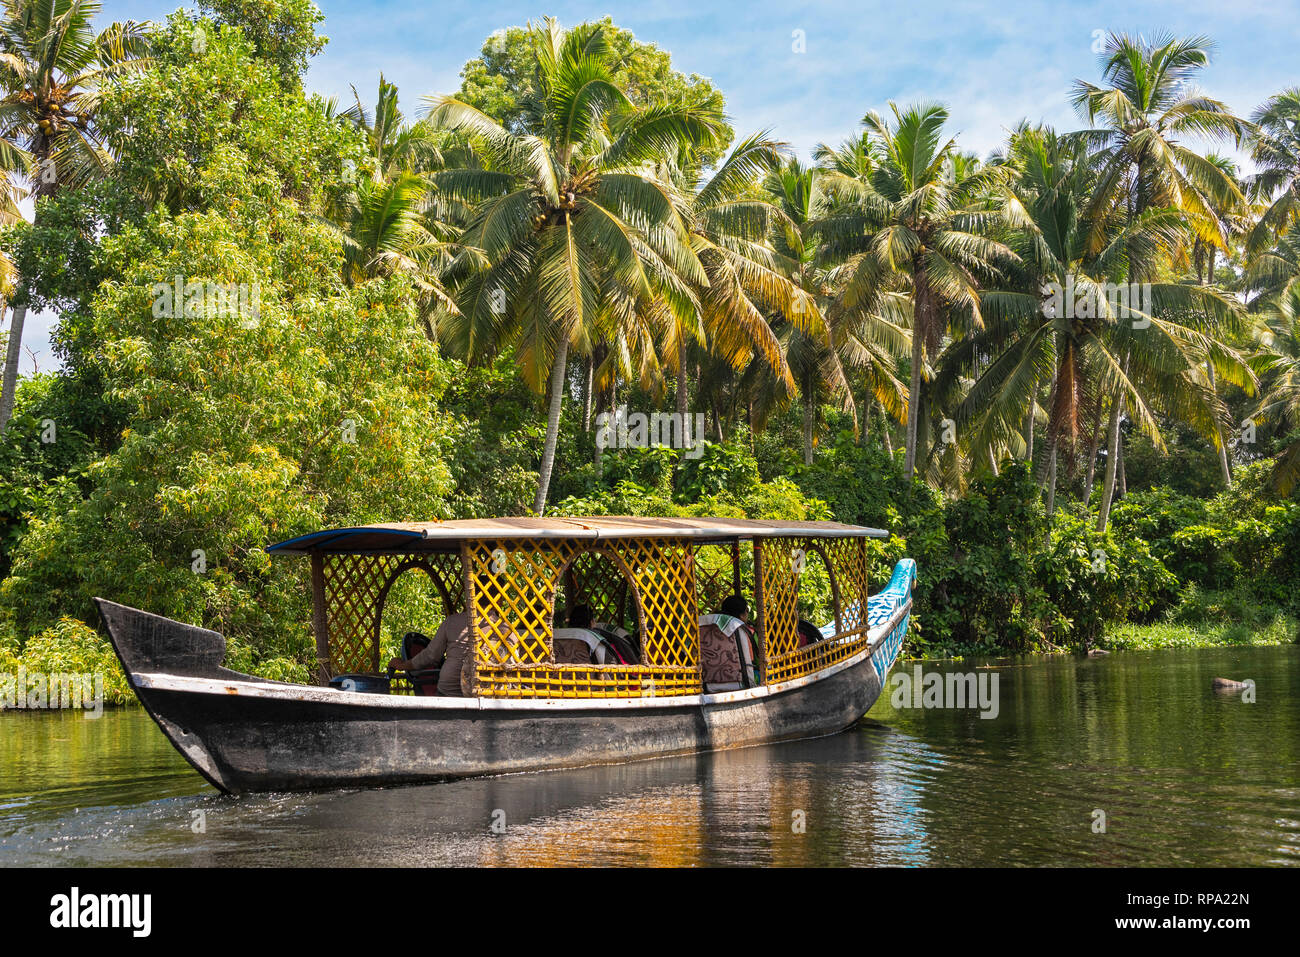 A typical day boat cruising floating on the Keralan backwaters on a sunny day with blue sky and palm trees. - Stock Image